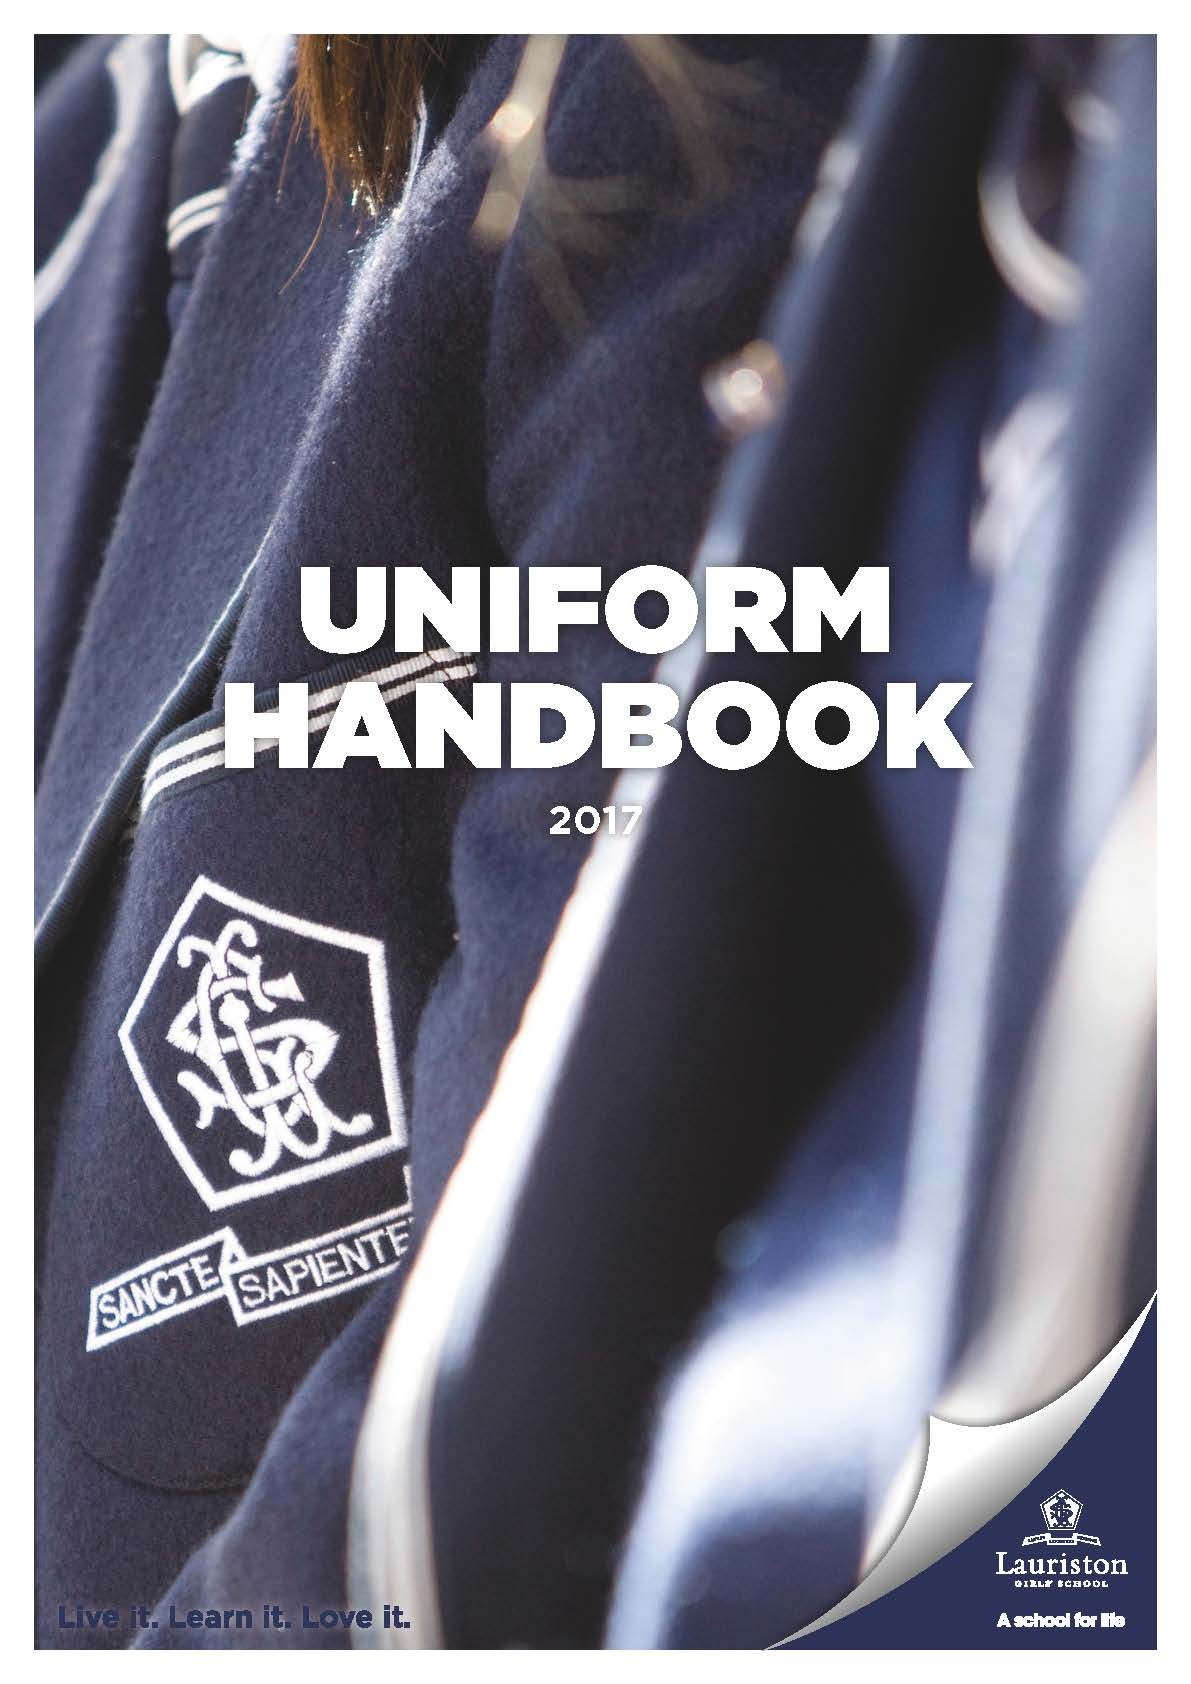 Pages from Uniform Handbook 2017